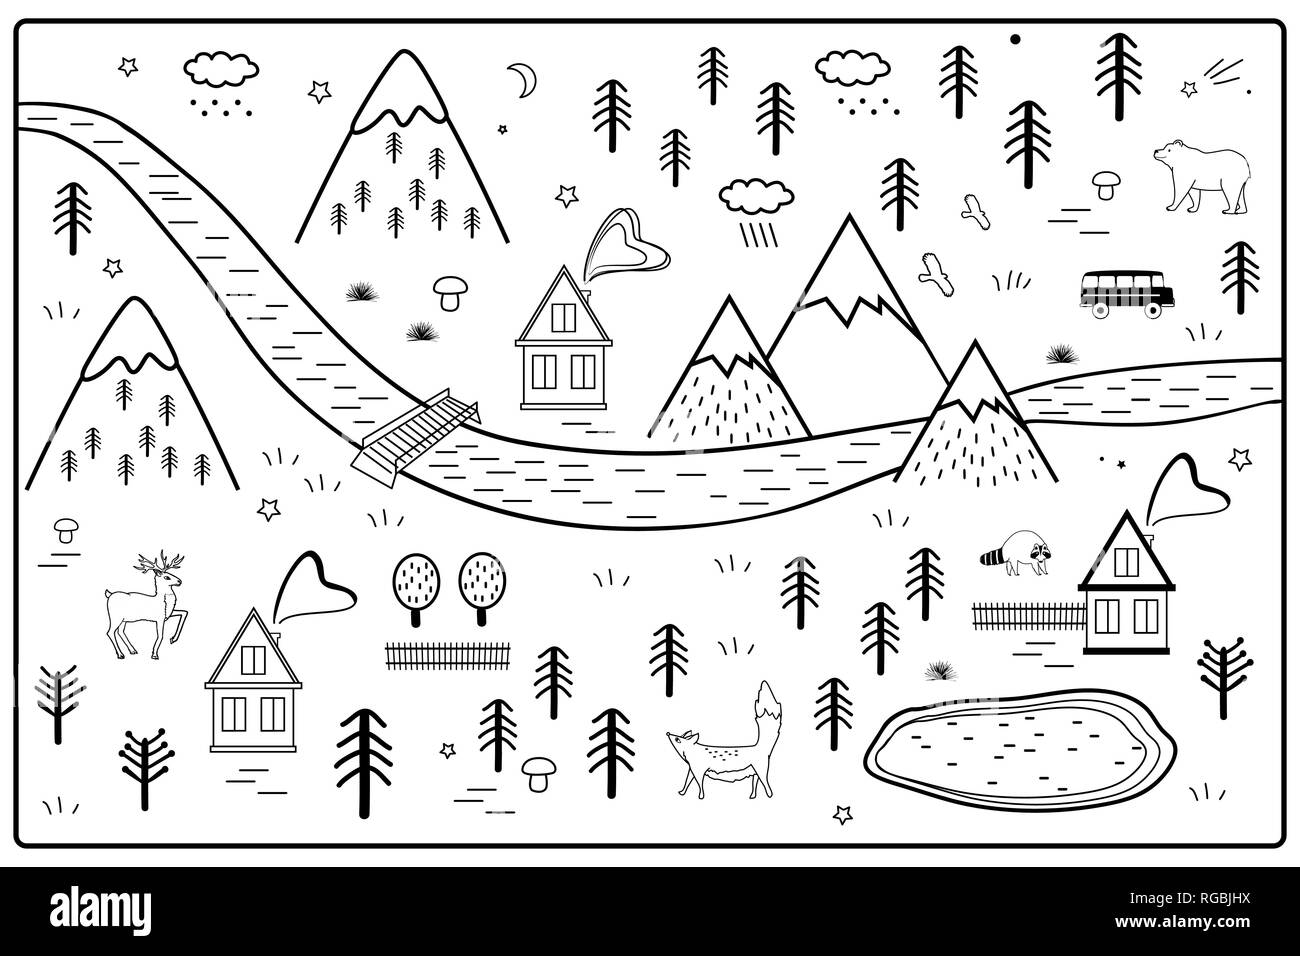 Vector River, Mountains and Woods Adventure Map with Houses and Animals. Scandinavian Style Art Nursery Monochrome Door or Wall Mat. - Stock Vector